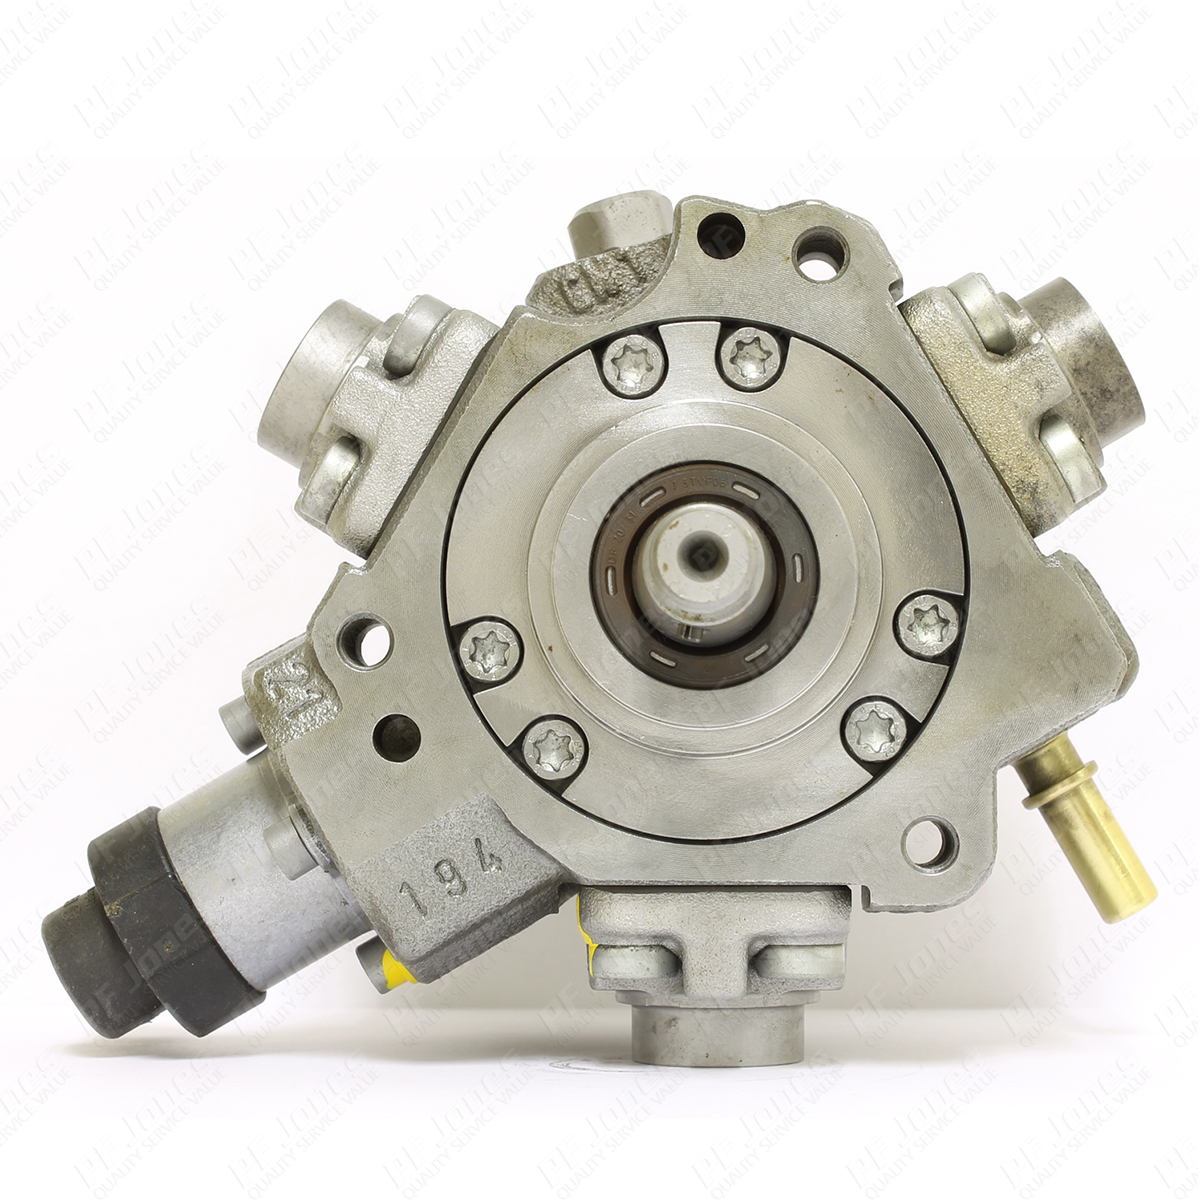 Peugeot 3008 1.6 HDI 2009 Onwards Reconditioned Bosch Diesel Fuel Pump 0445010102